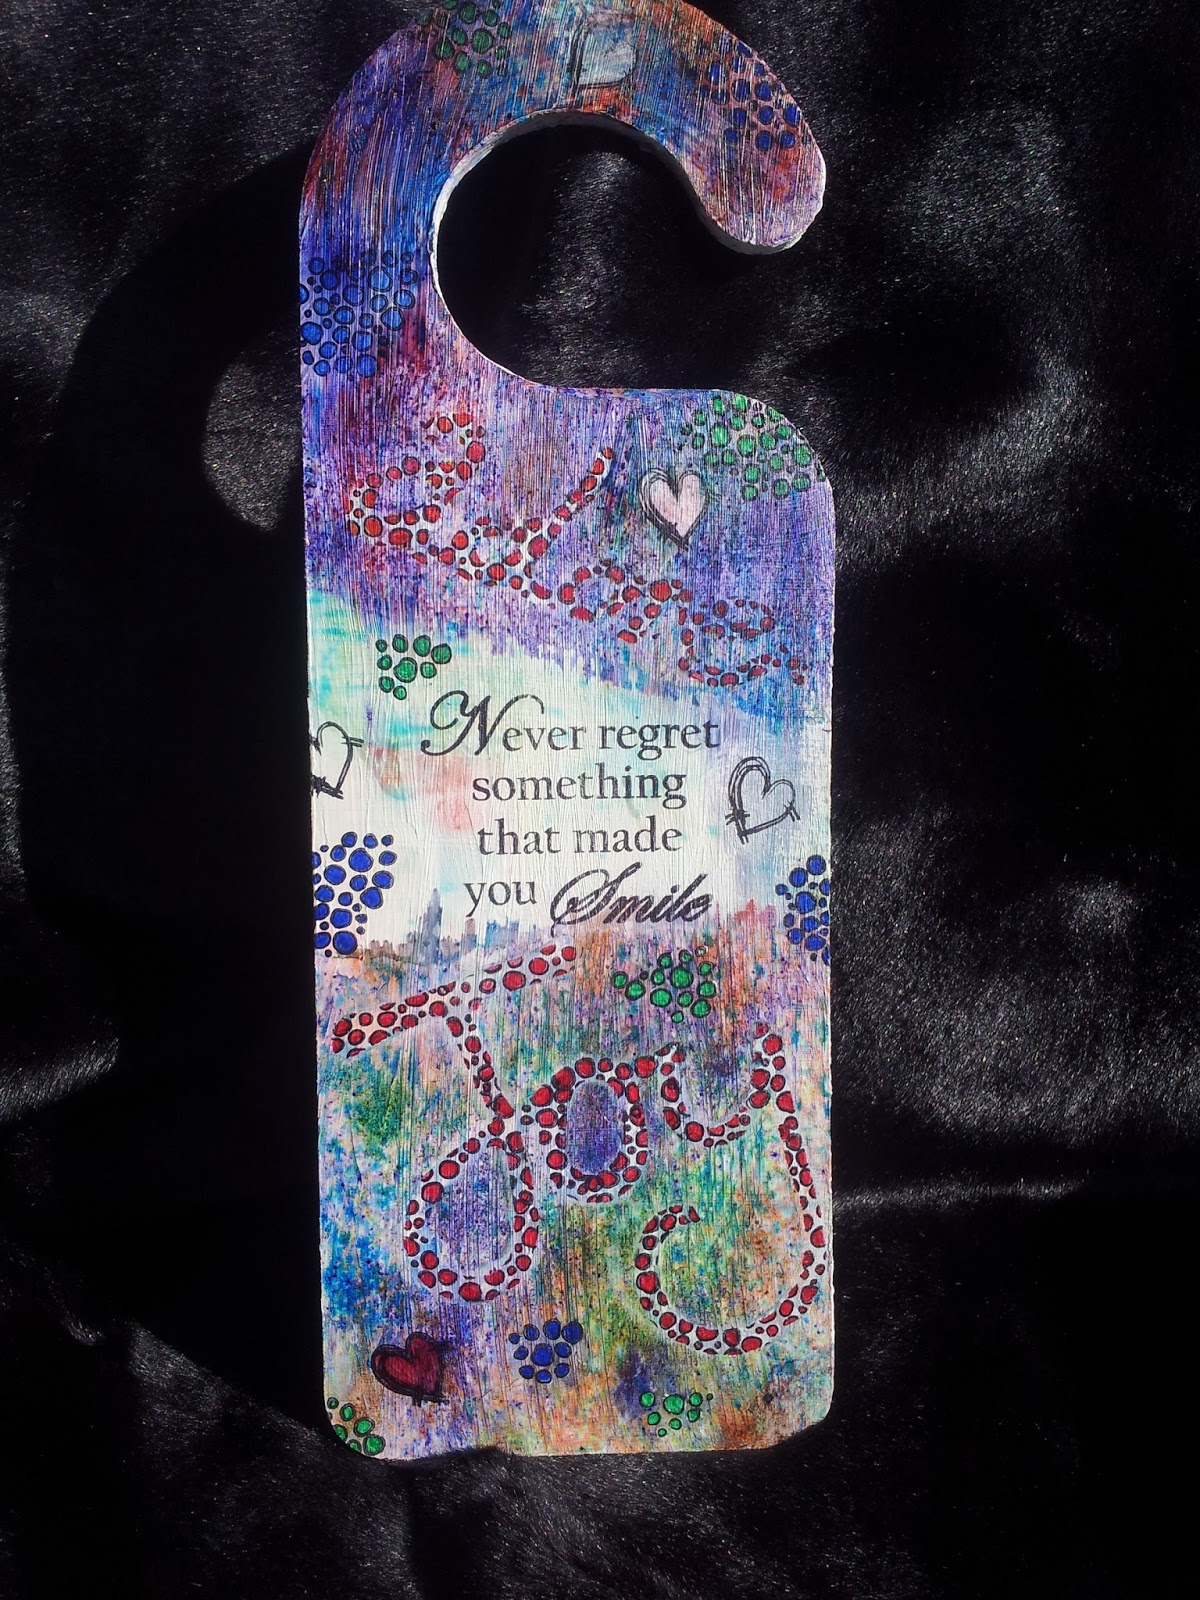 Today I am sharing the Door Handle s&le I made for the launch of Leonie Pujolu0027s new collection. & Barnsley Crafter: Funky Door Hanger Using Leonieu0027s Collection